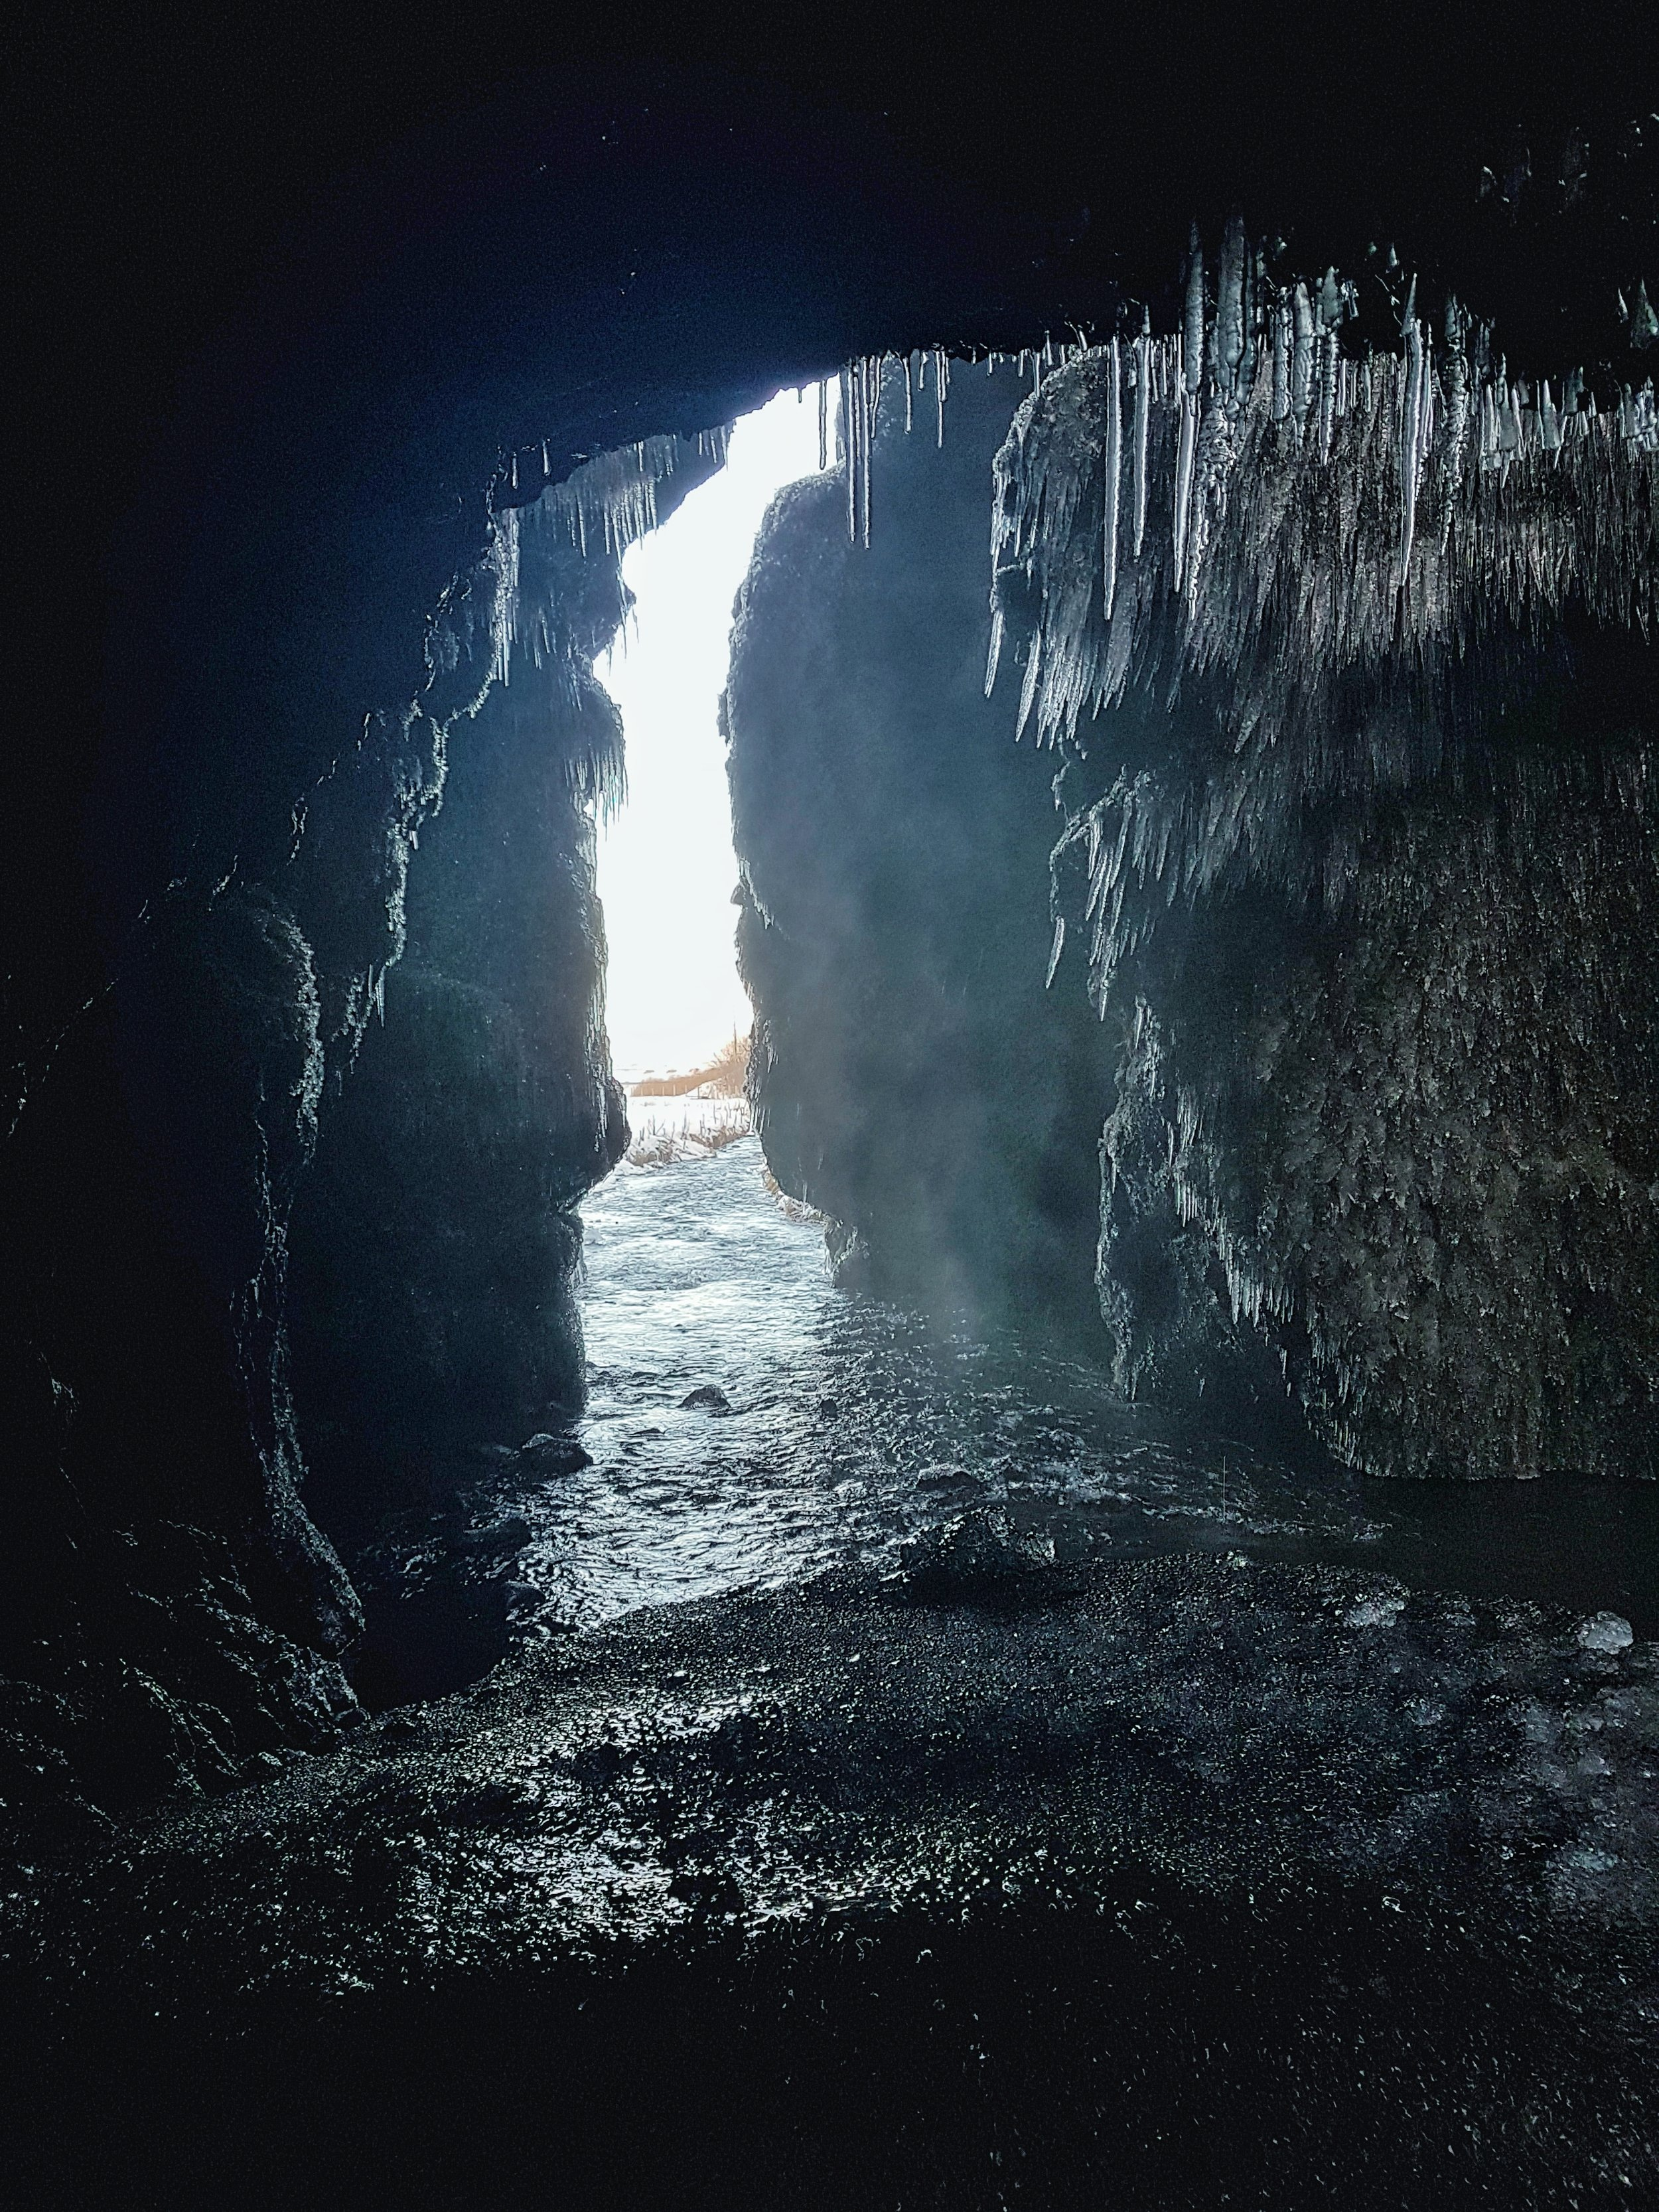 Iceland. snow. travel. adventure. photography. trip. epic landscape. snow. cold. freezing. sunrise. cave mouth.jpg